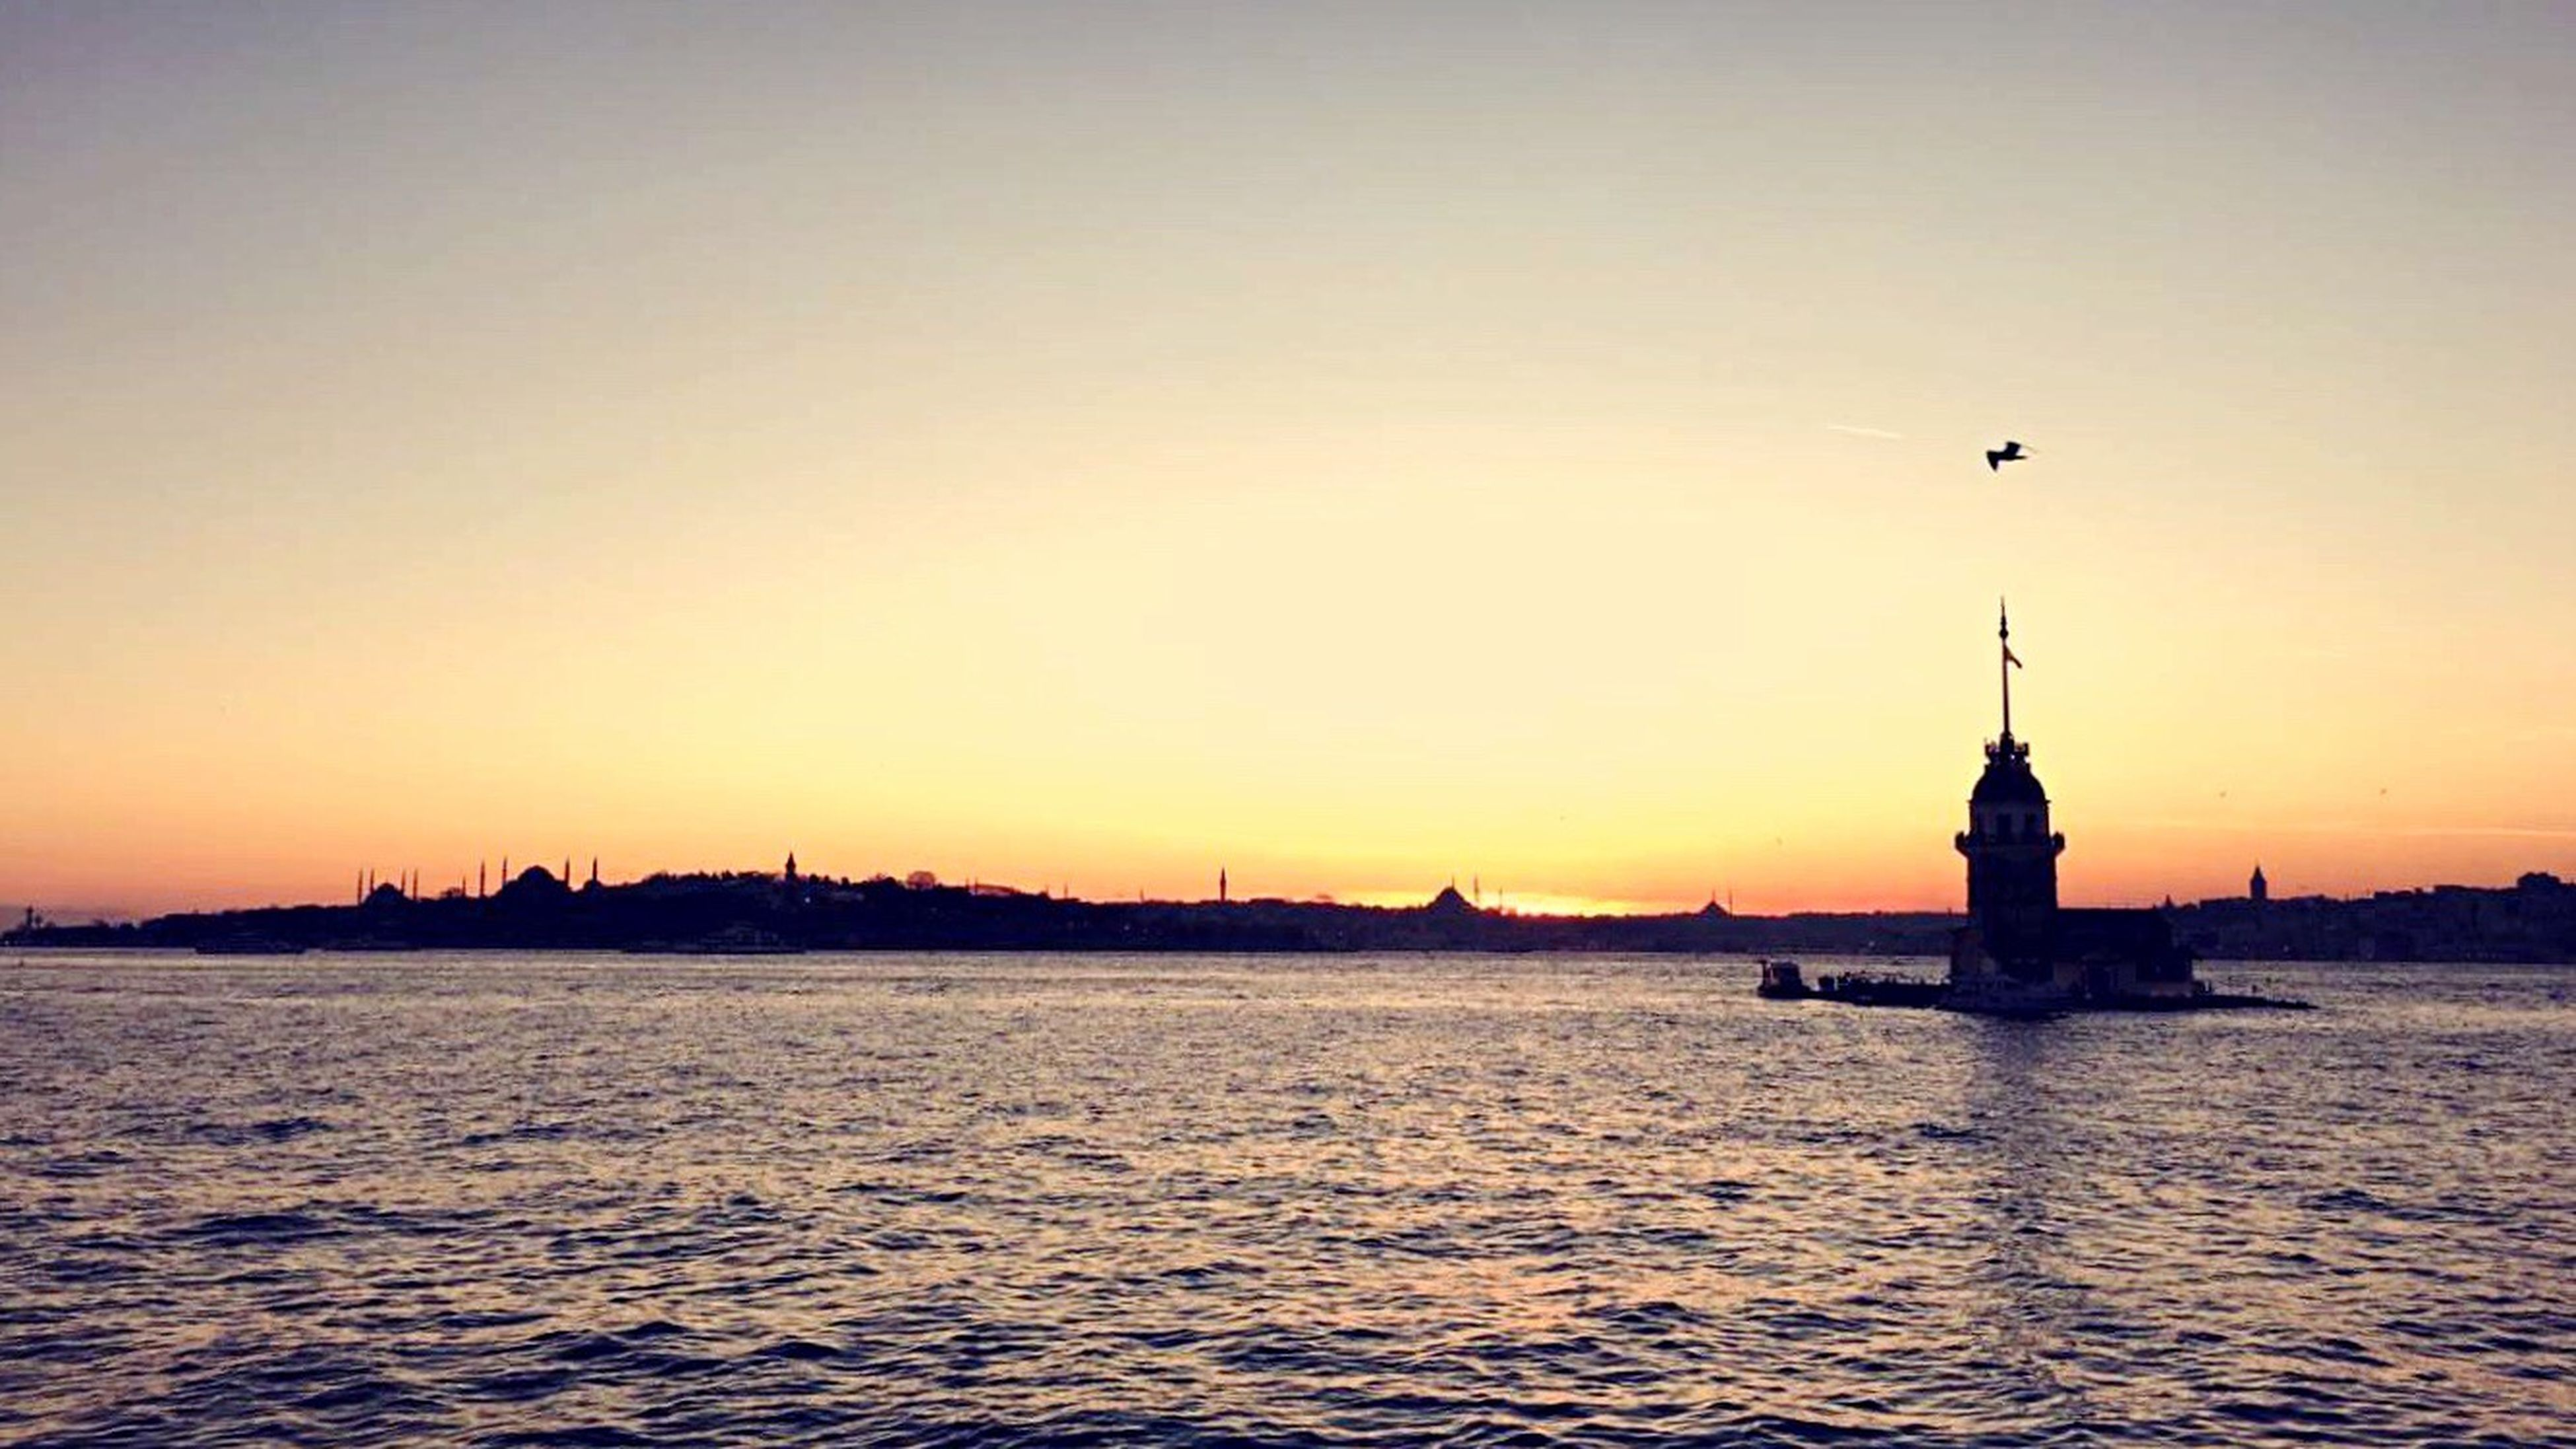 sunset, waterfront, water, building exterior, sea, built structure, architecture, transportation, nautical vessel, rippled, orange color, copy space, boat, mode of transport, clear sky, silhouette, scenics, sky, tranquility, tranquil scene